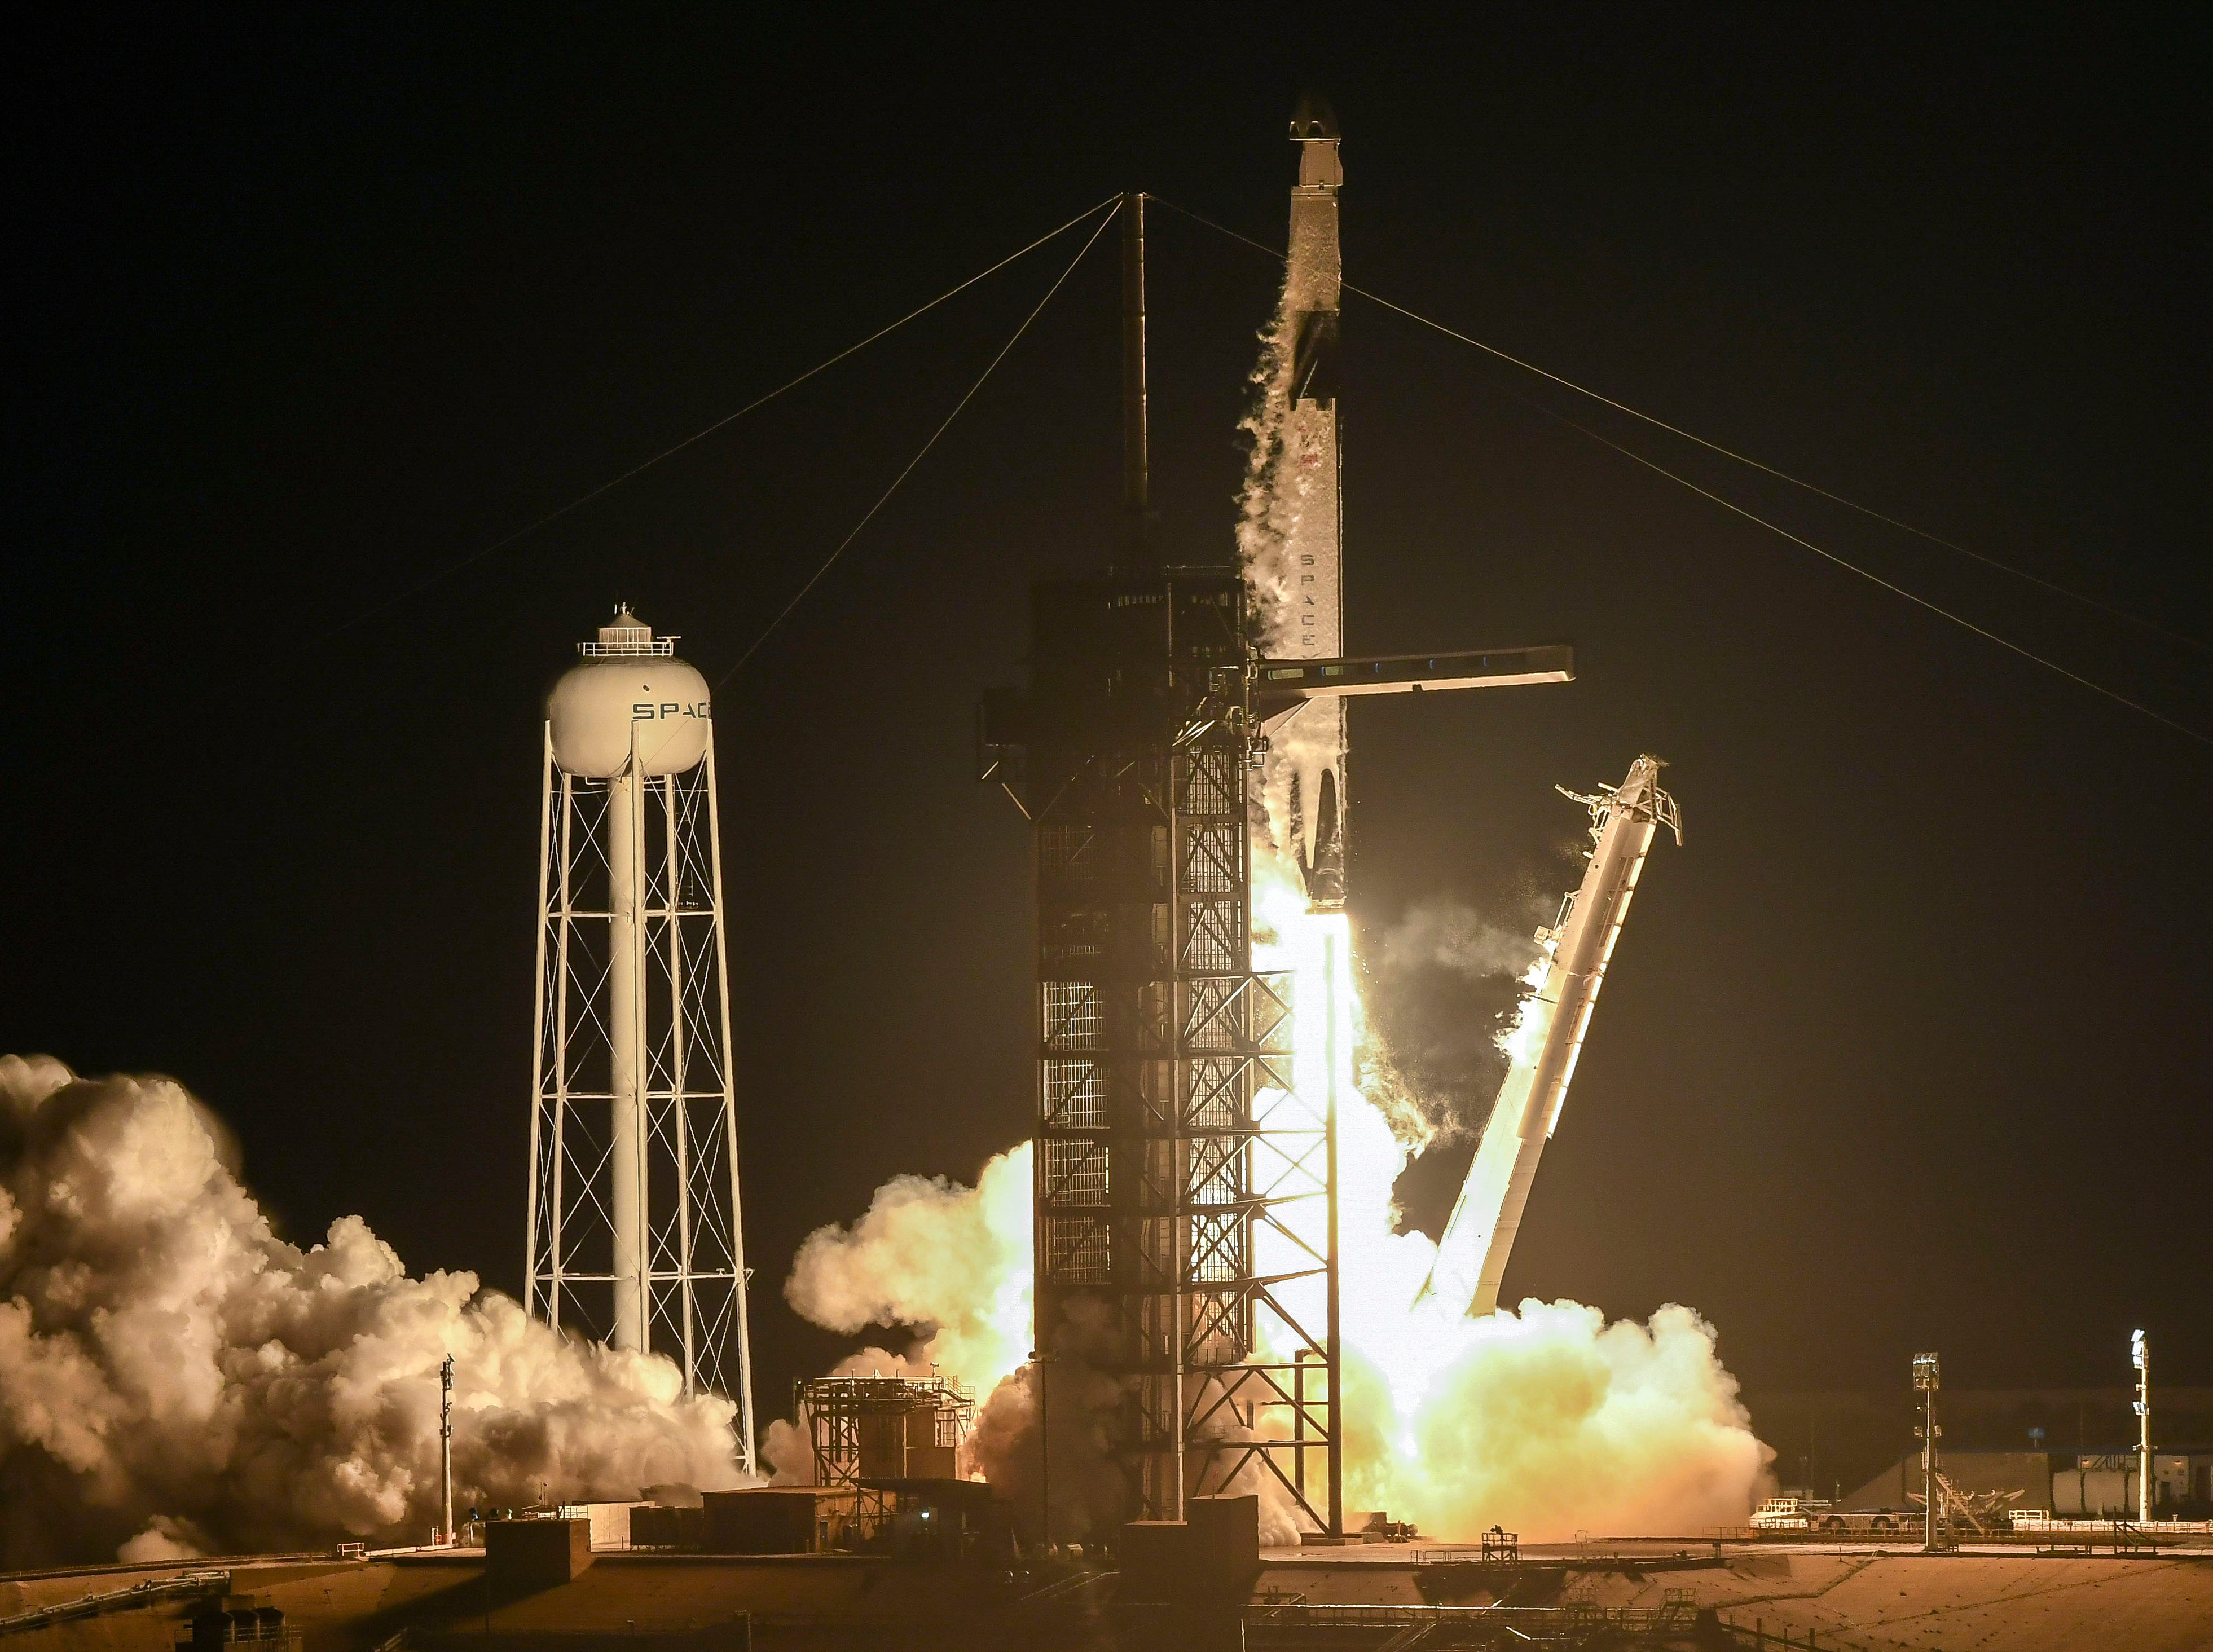 Nuclear rockets could open up solar system and help settle space | Glenn Harlan Reynolds